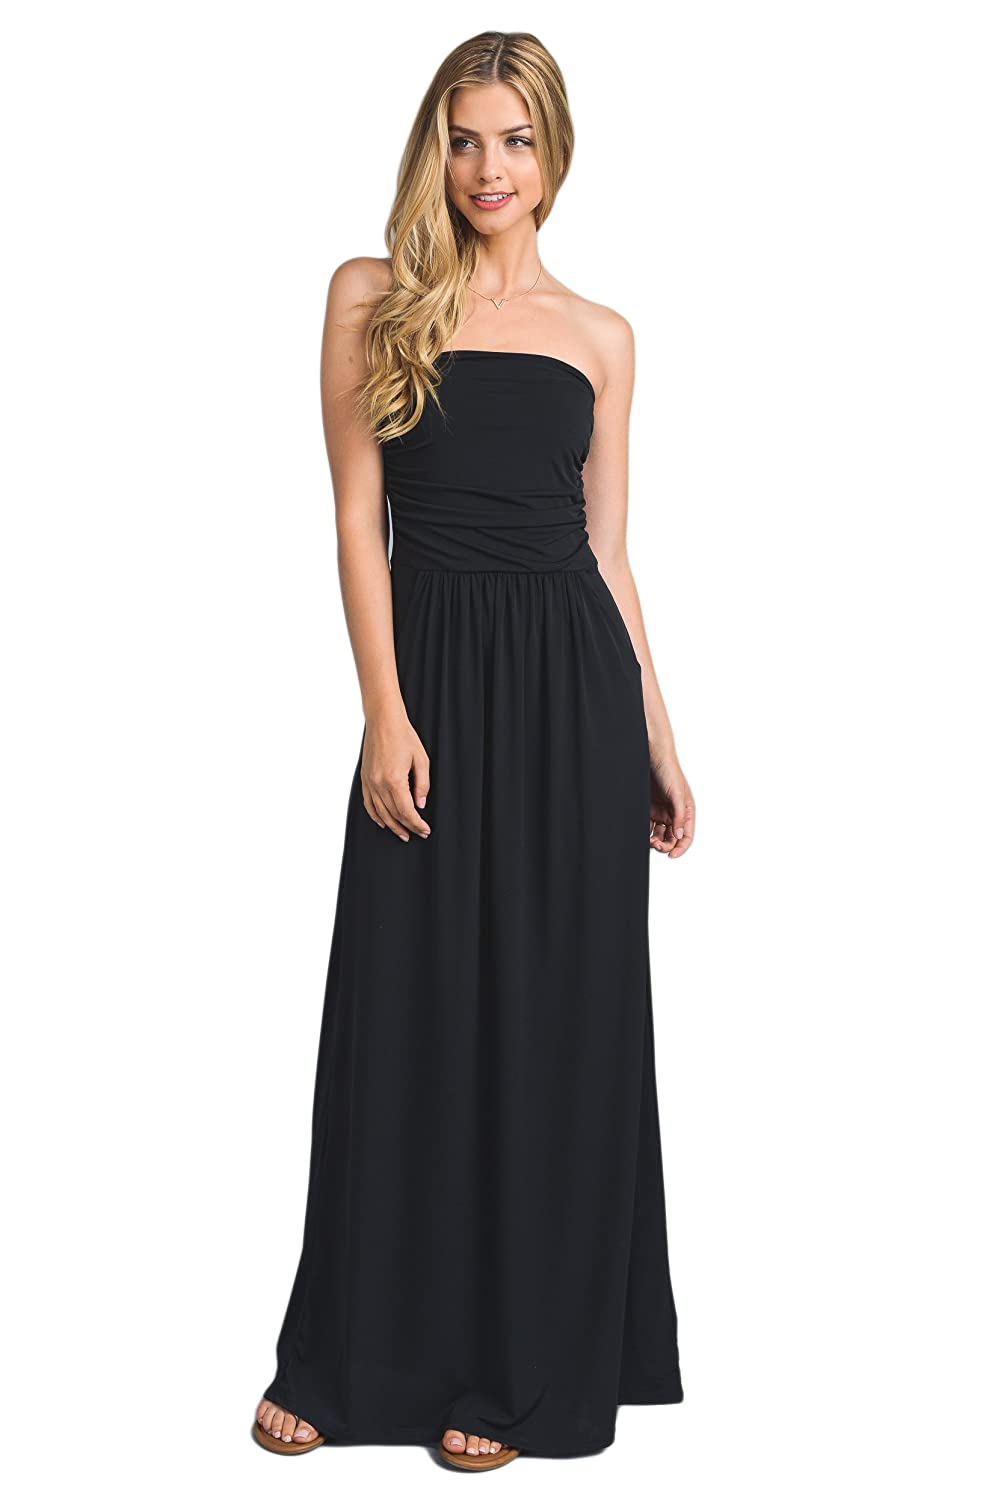 317139f1b283 Vanilla Bay Solid Maxi Dress, X-Large, Black at Amazon Women's Clothing  store: